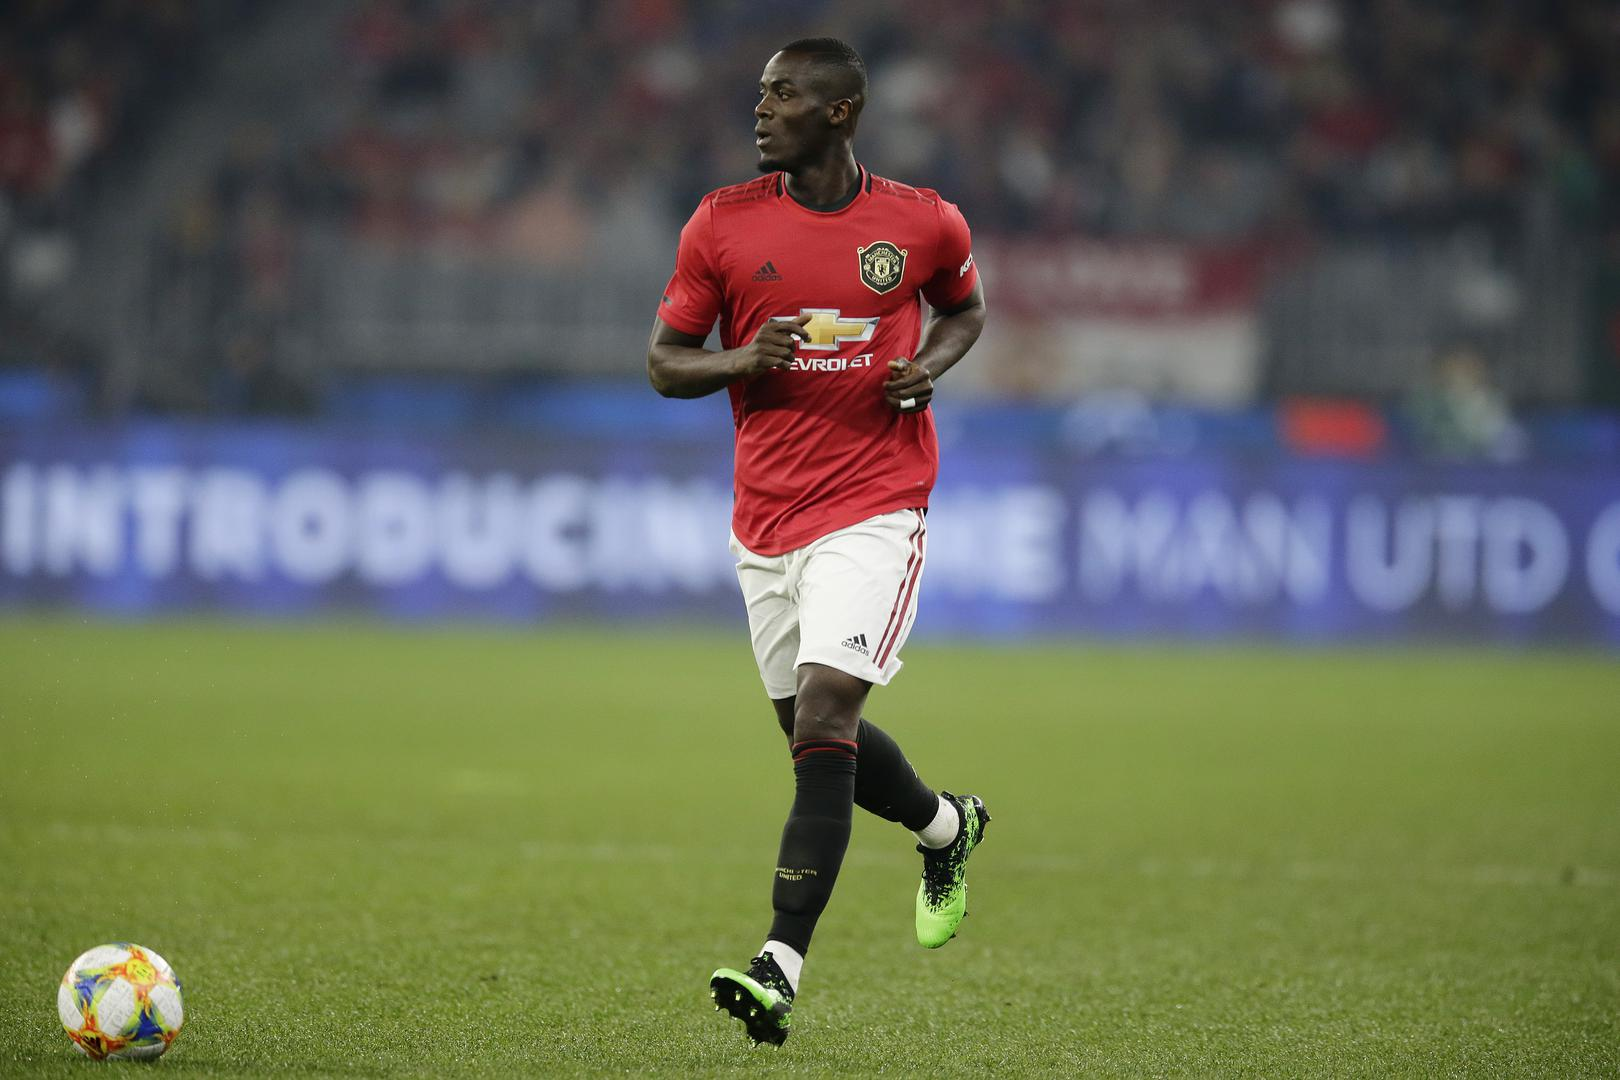 Eric Bailly on the ball during the tour game against Leeds United.